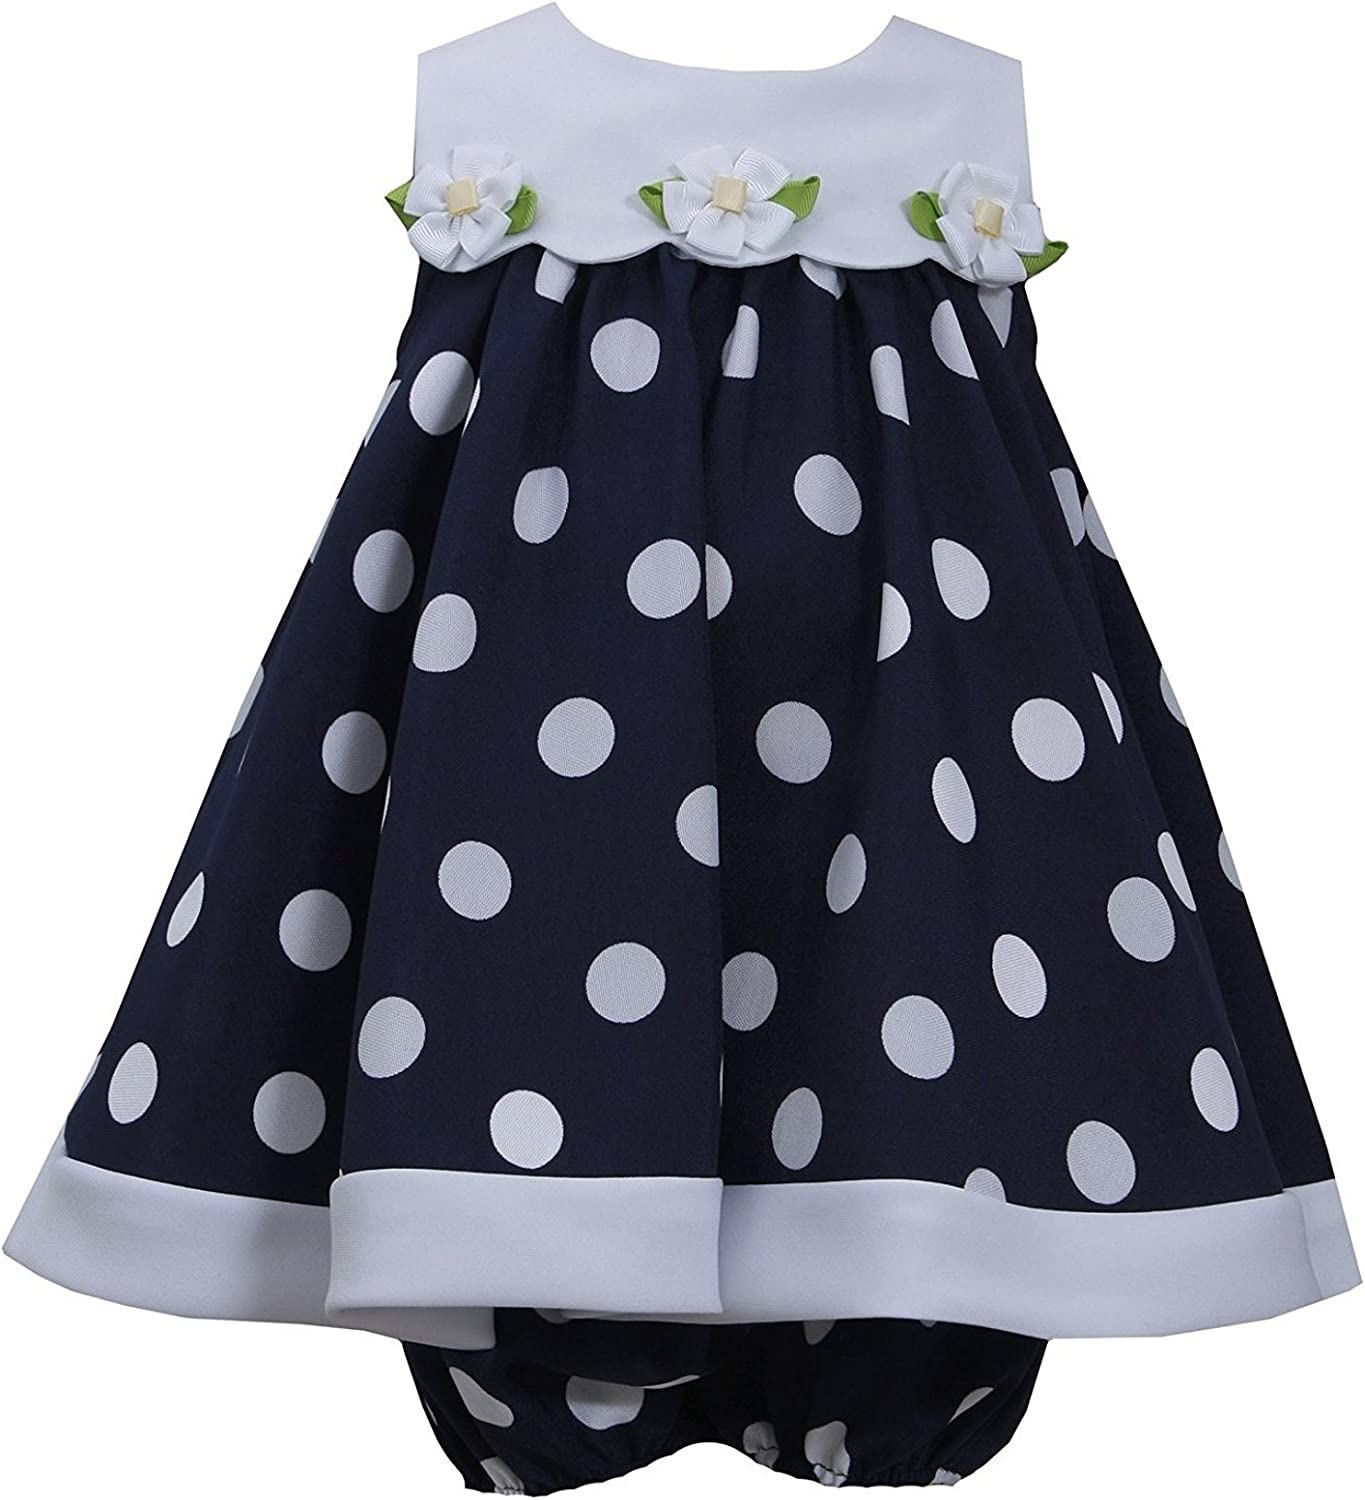 Details about  /NWT Gymboree Marina Party Navy Blue Rosette Dress 12 18 24M 4T Toddler Girls